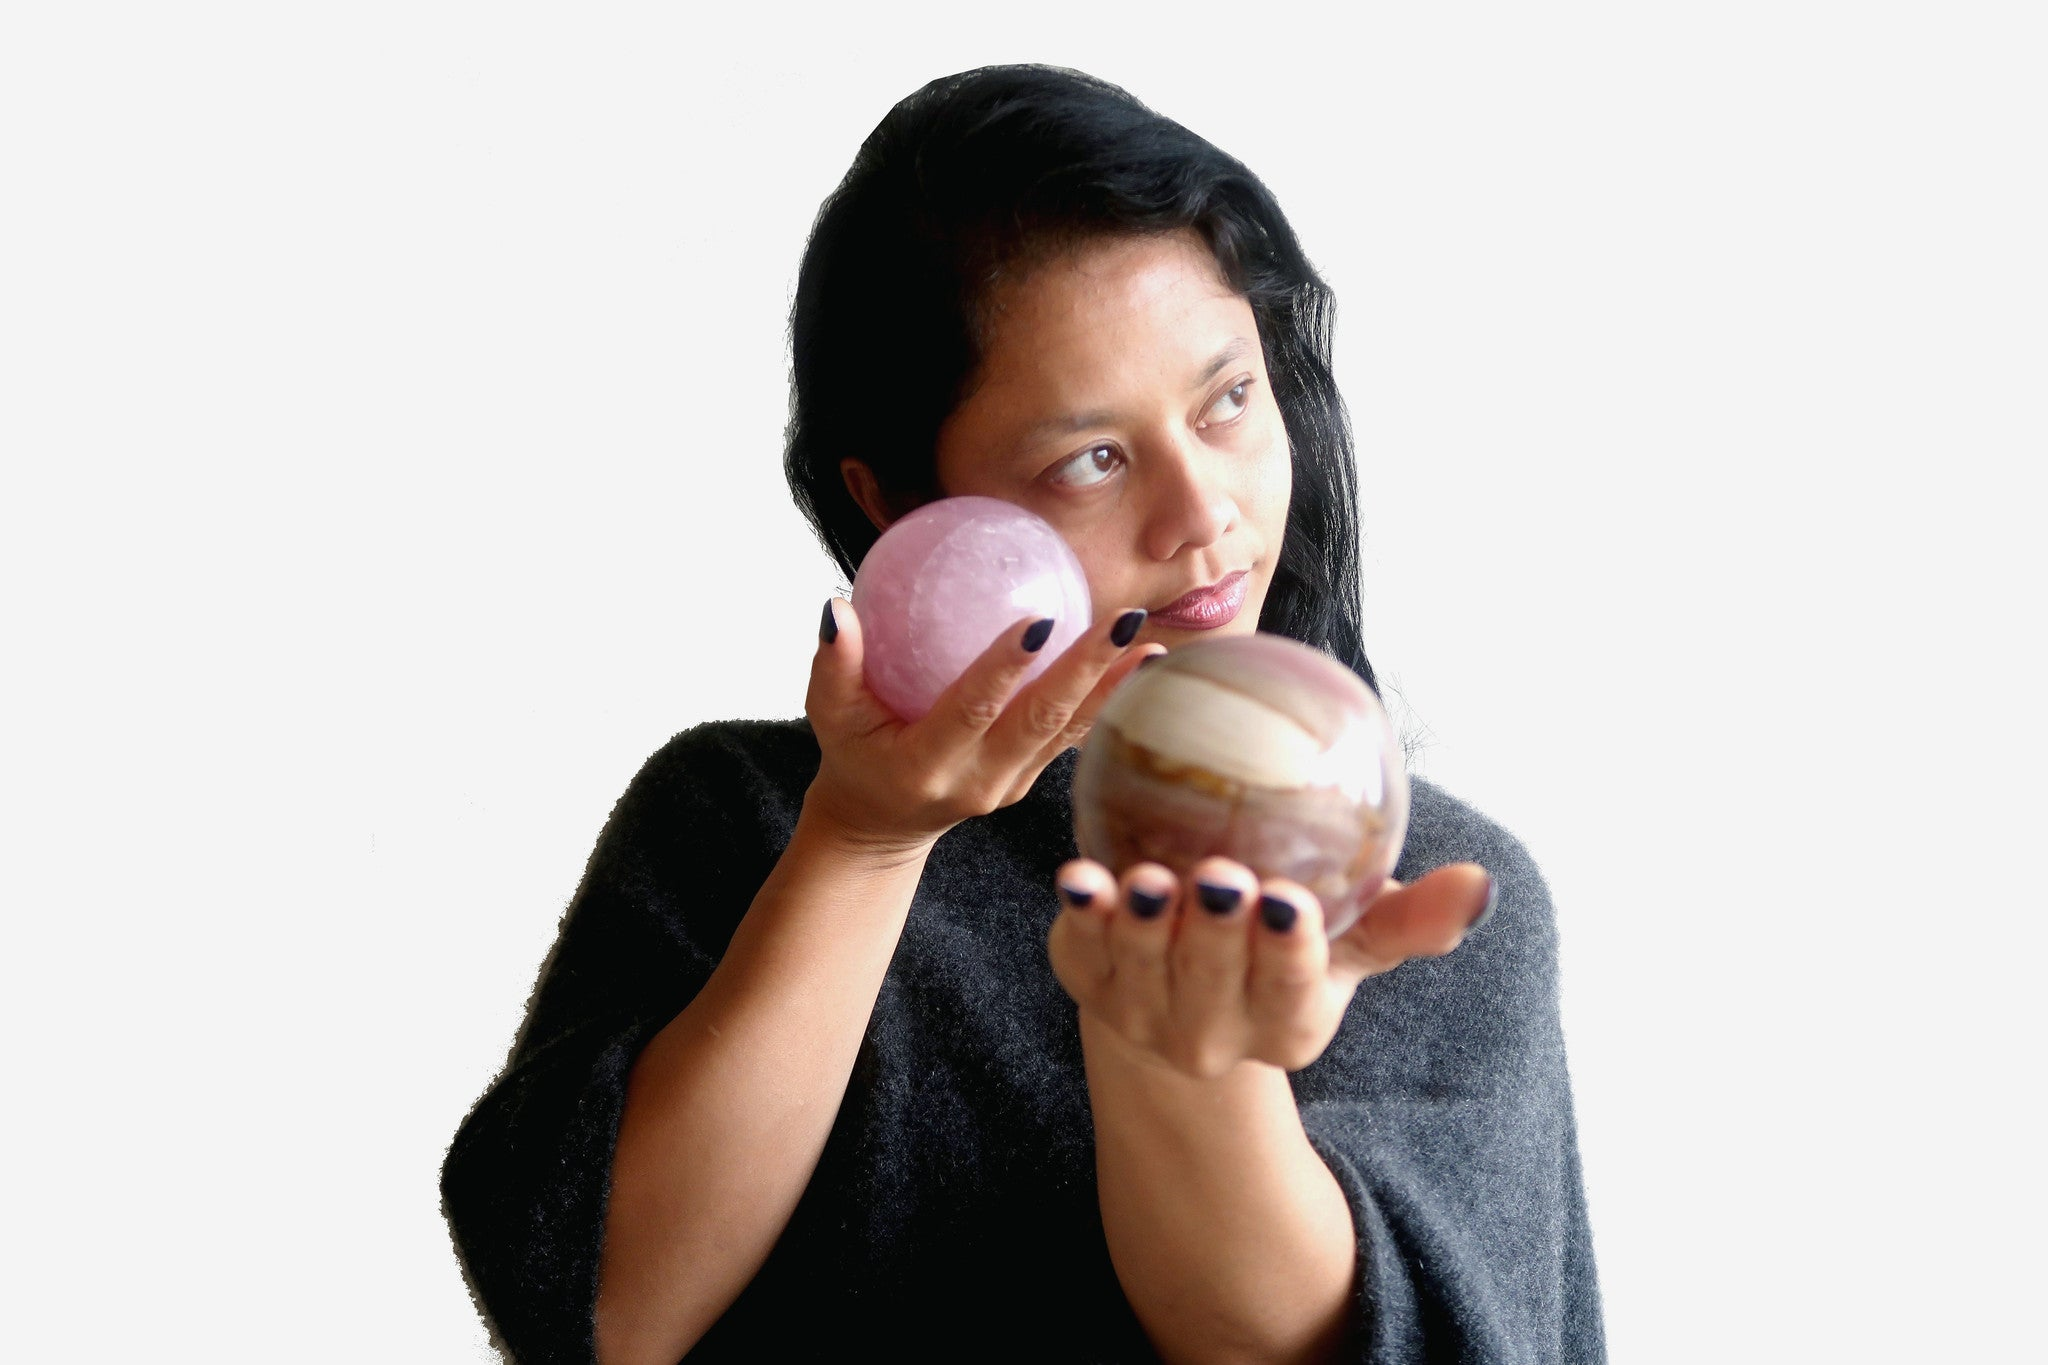 crystal_ball_shop_model